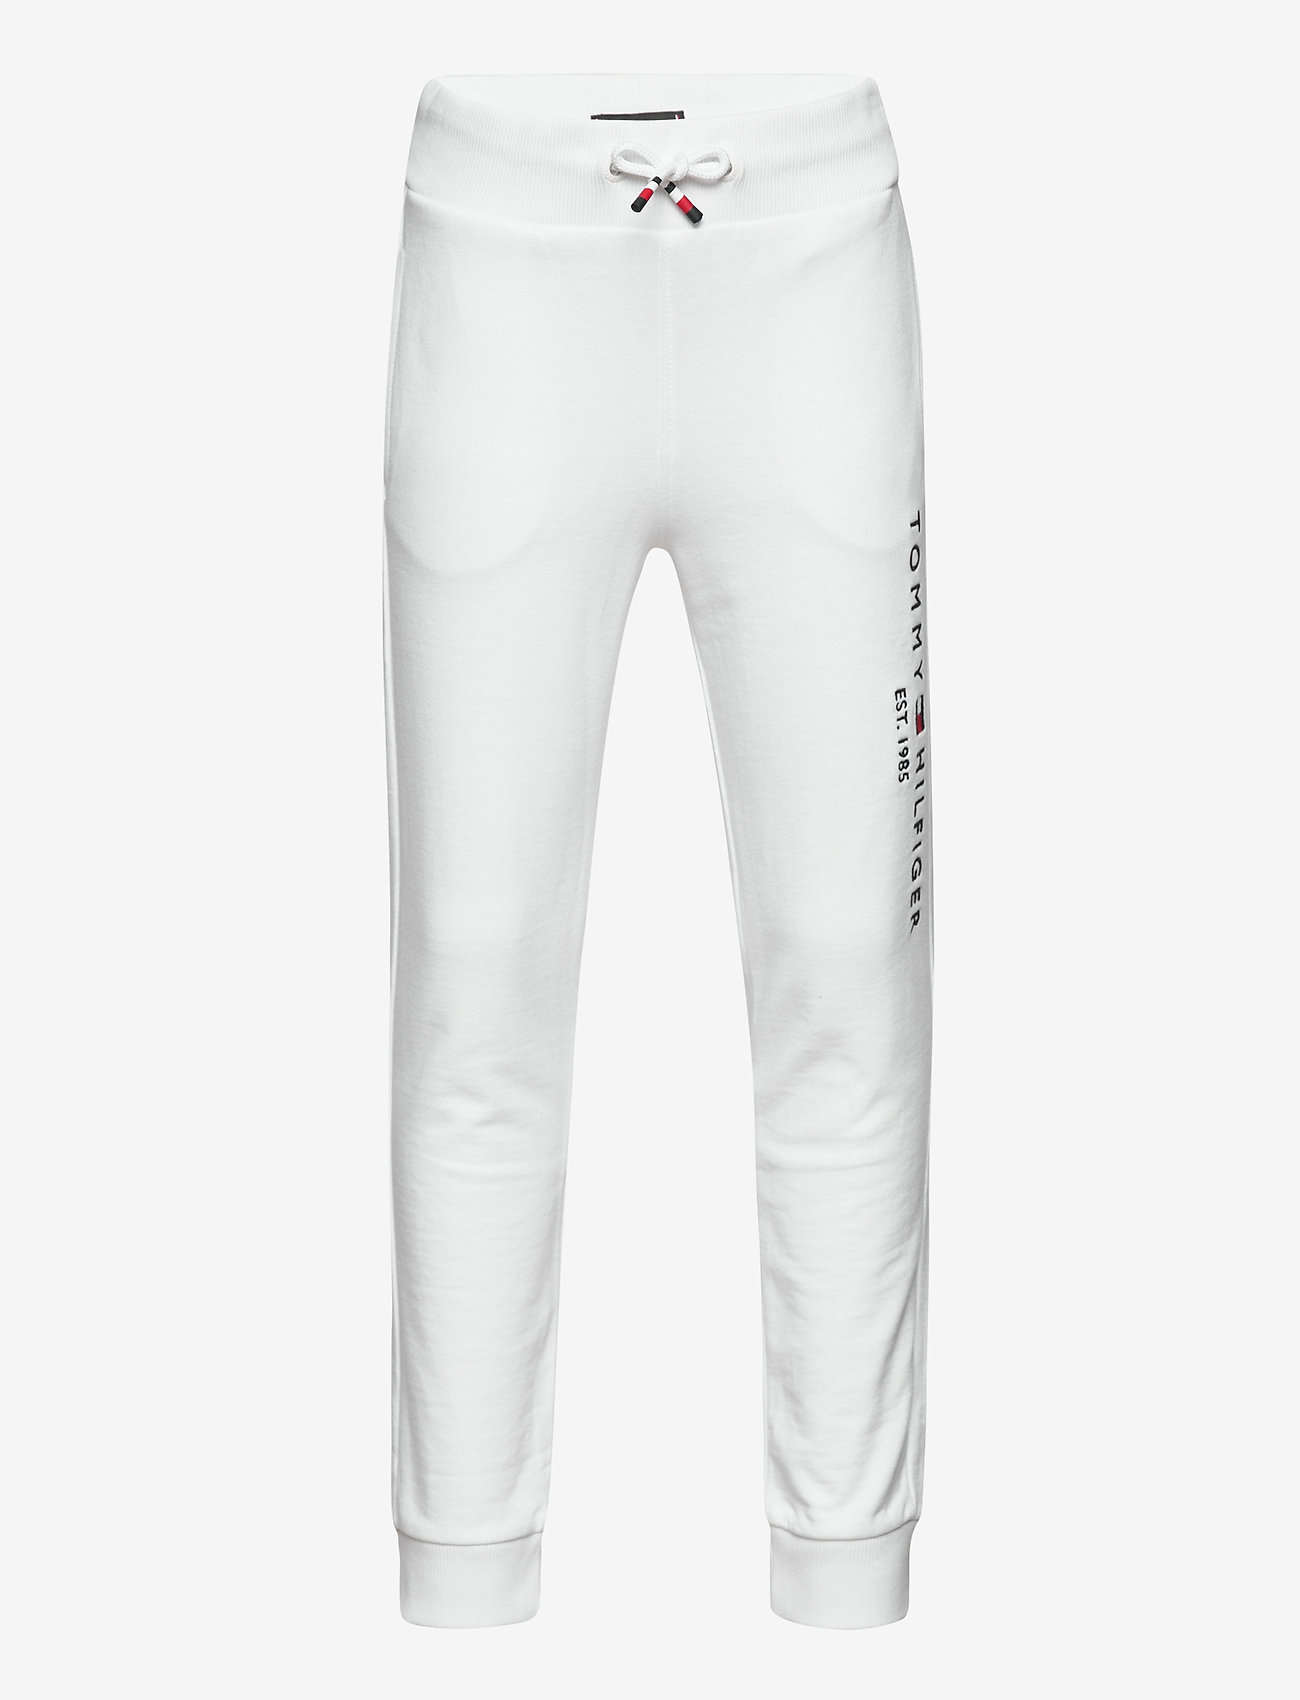 Tommy Hilfiger - ESSENTIAL SWEATPANTS - sweatpants - white - 0